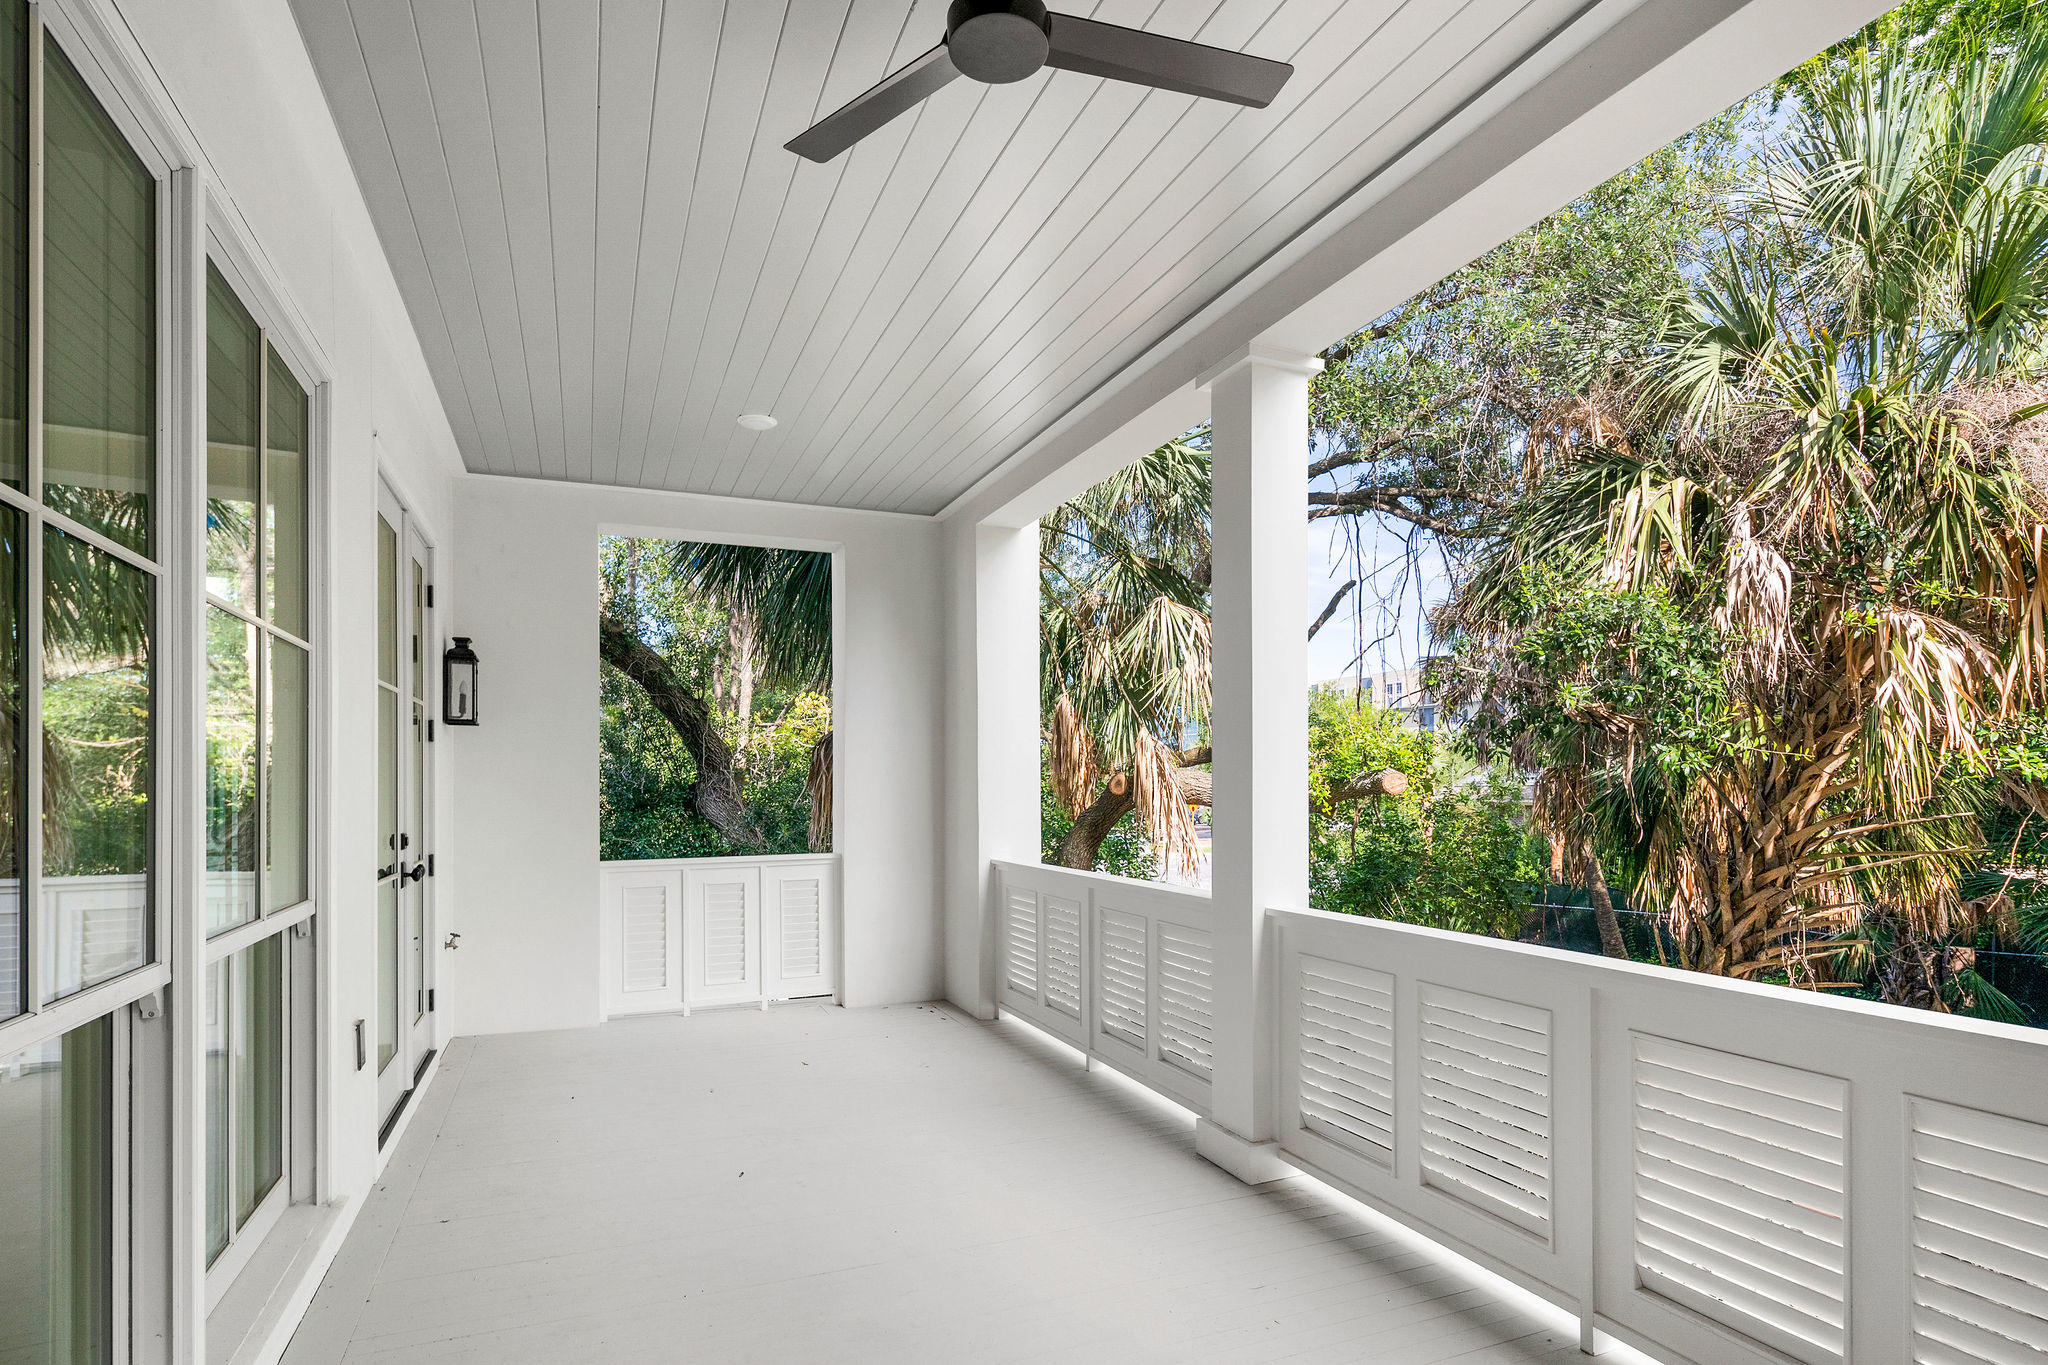 Harleston Village Condos For Sale - 61 B Barre, Charleston, SC - 29